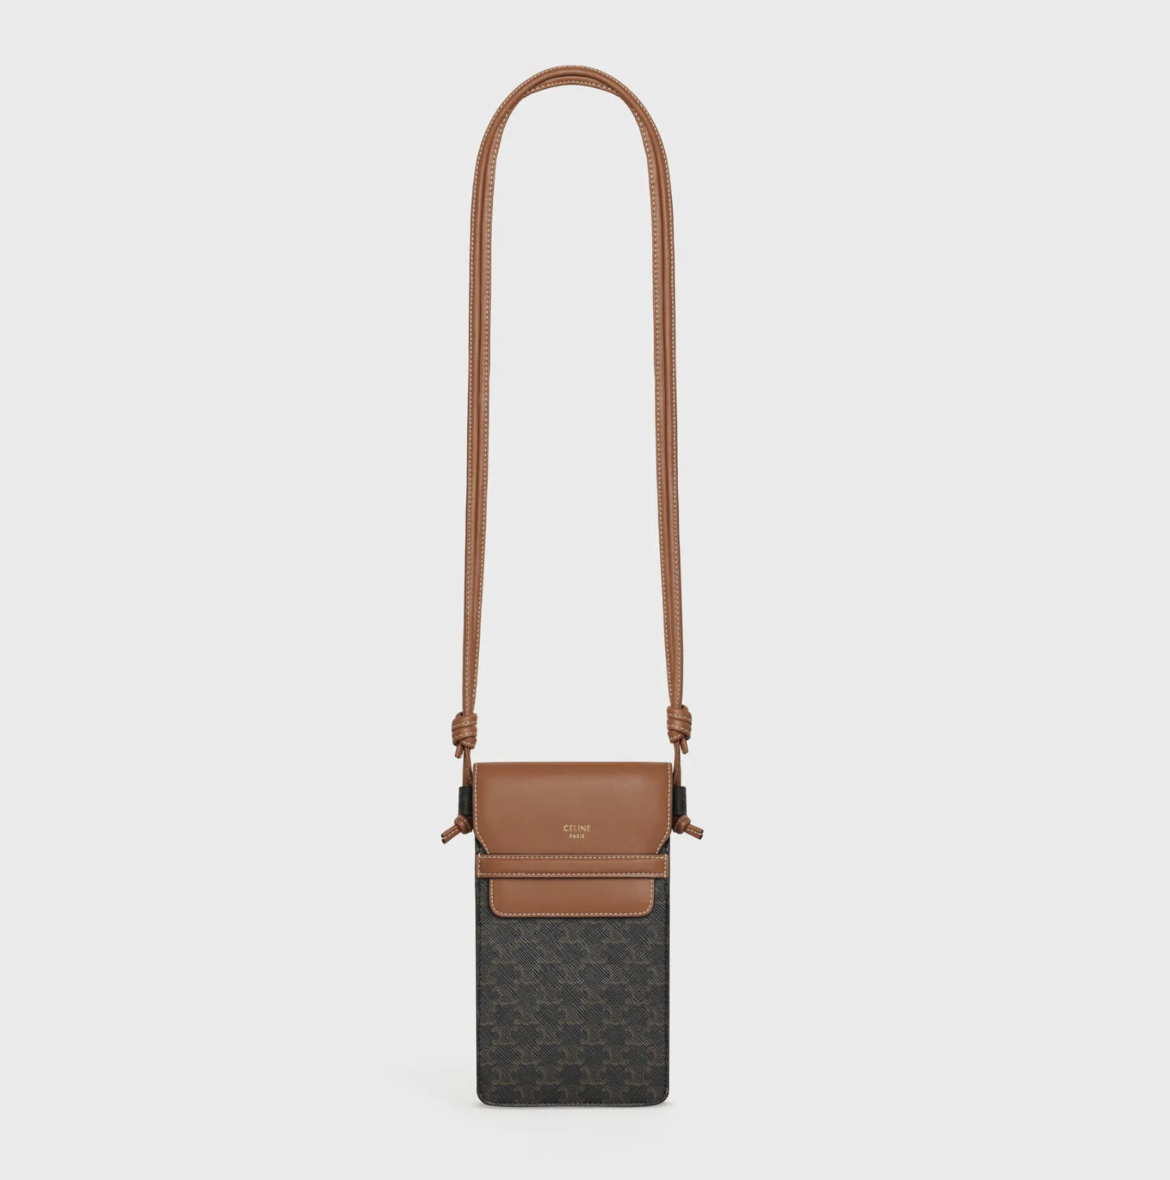 CELINE Phone Pouch in Triomphe Canvas and Lambskin HK$4,400